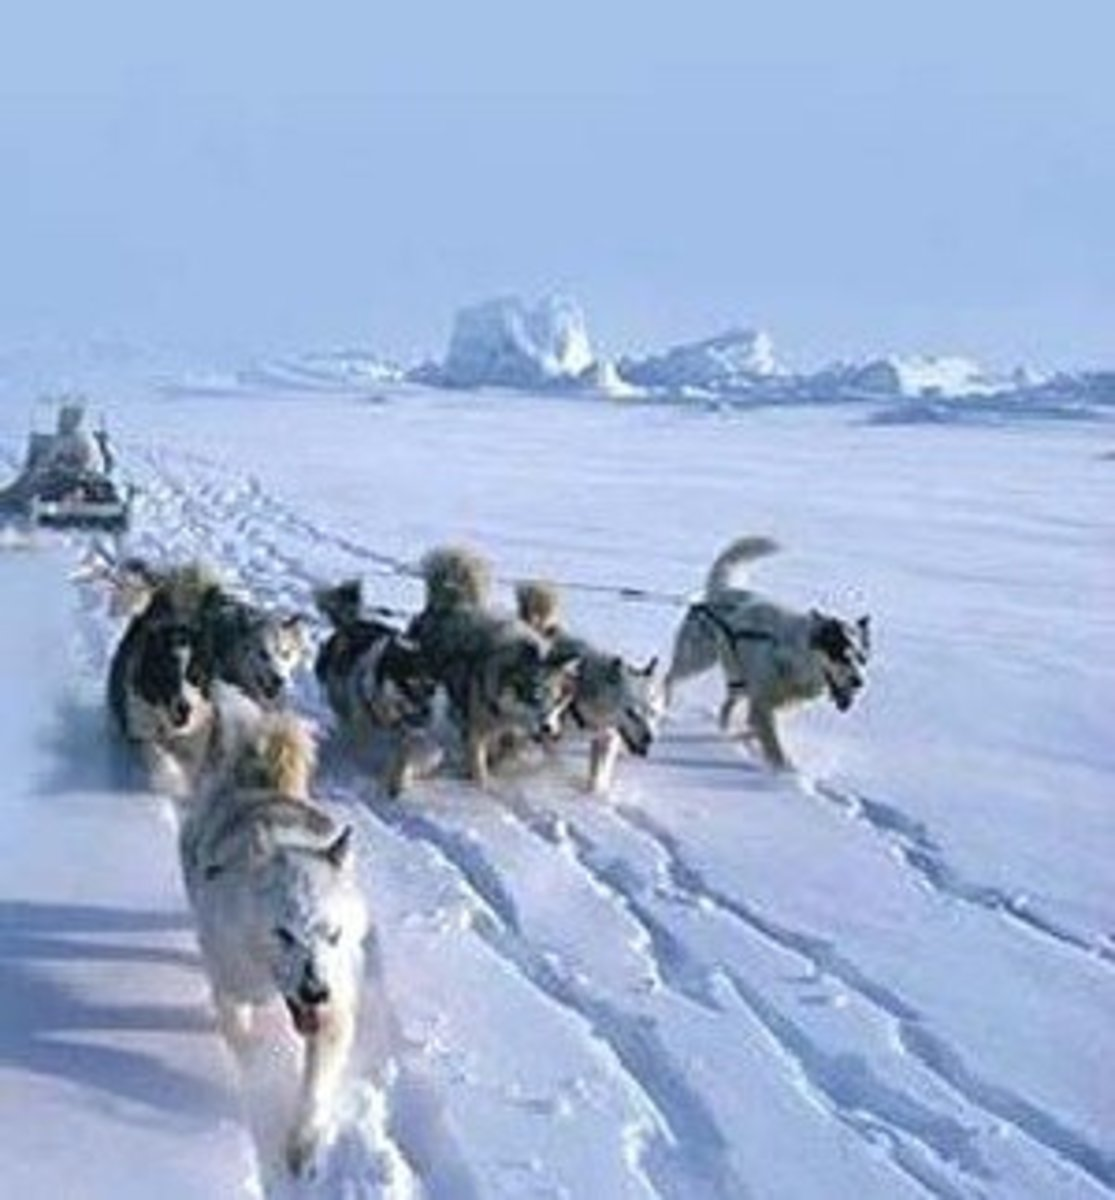 Eastern Arctic hitch - the fan shaped array of dogs is made possible by the lack of trees.